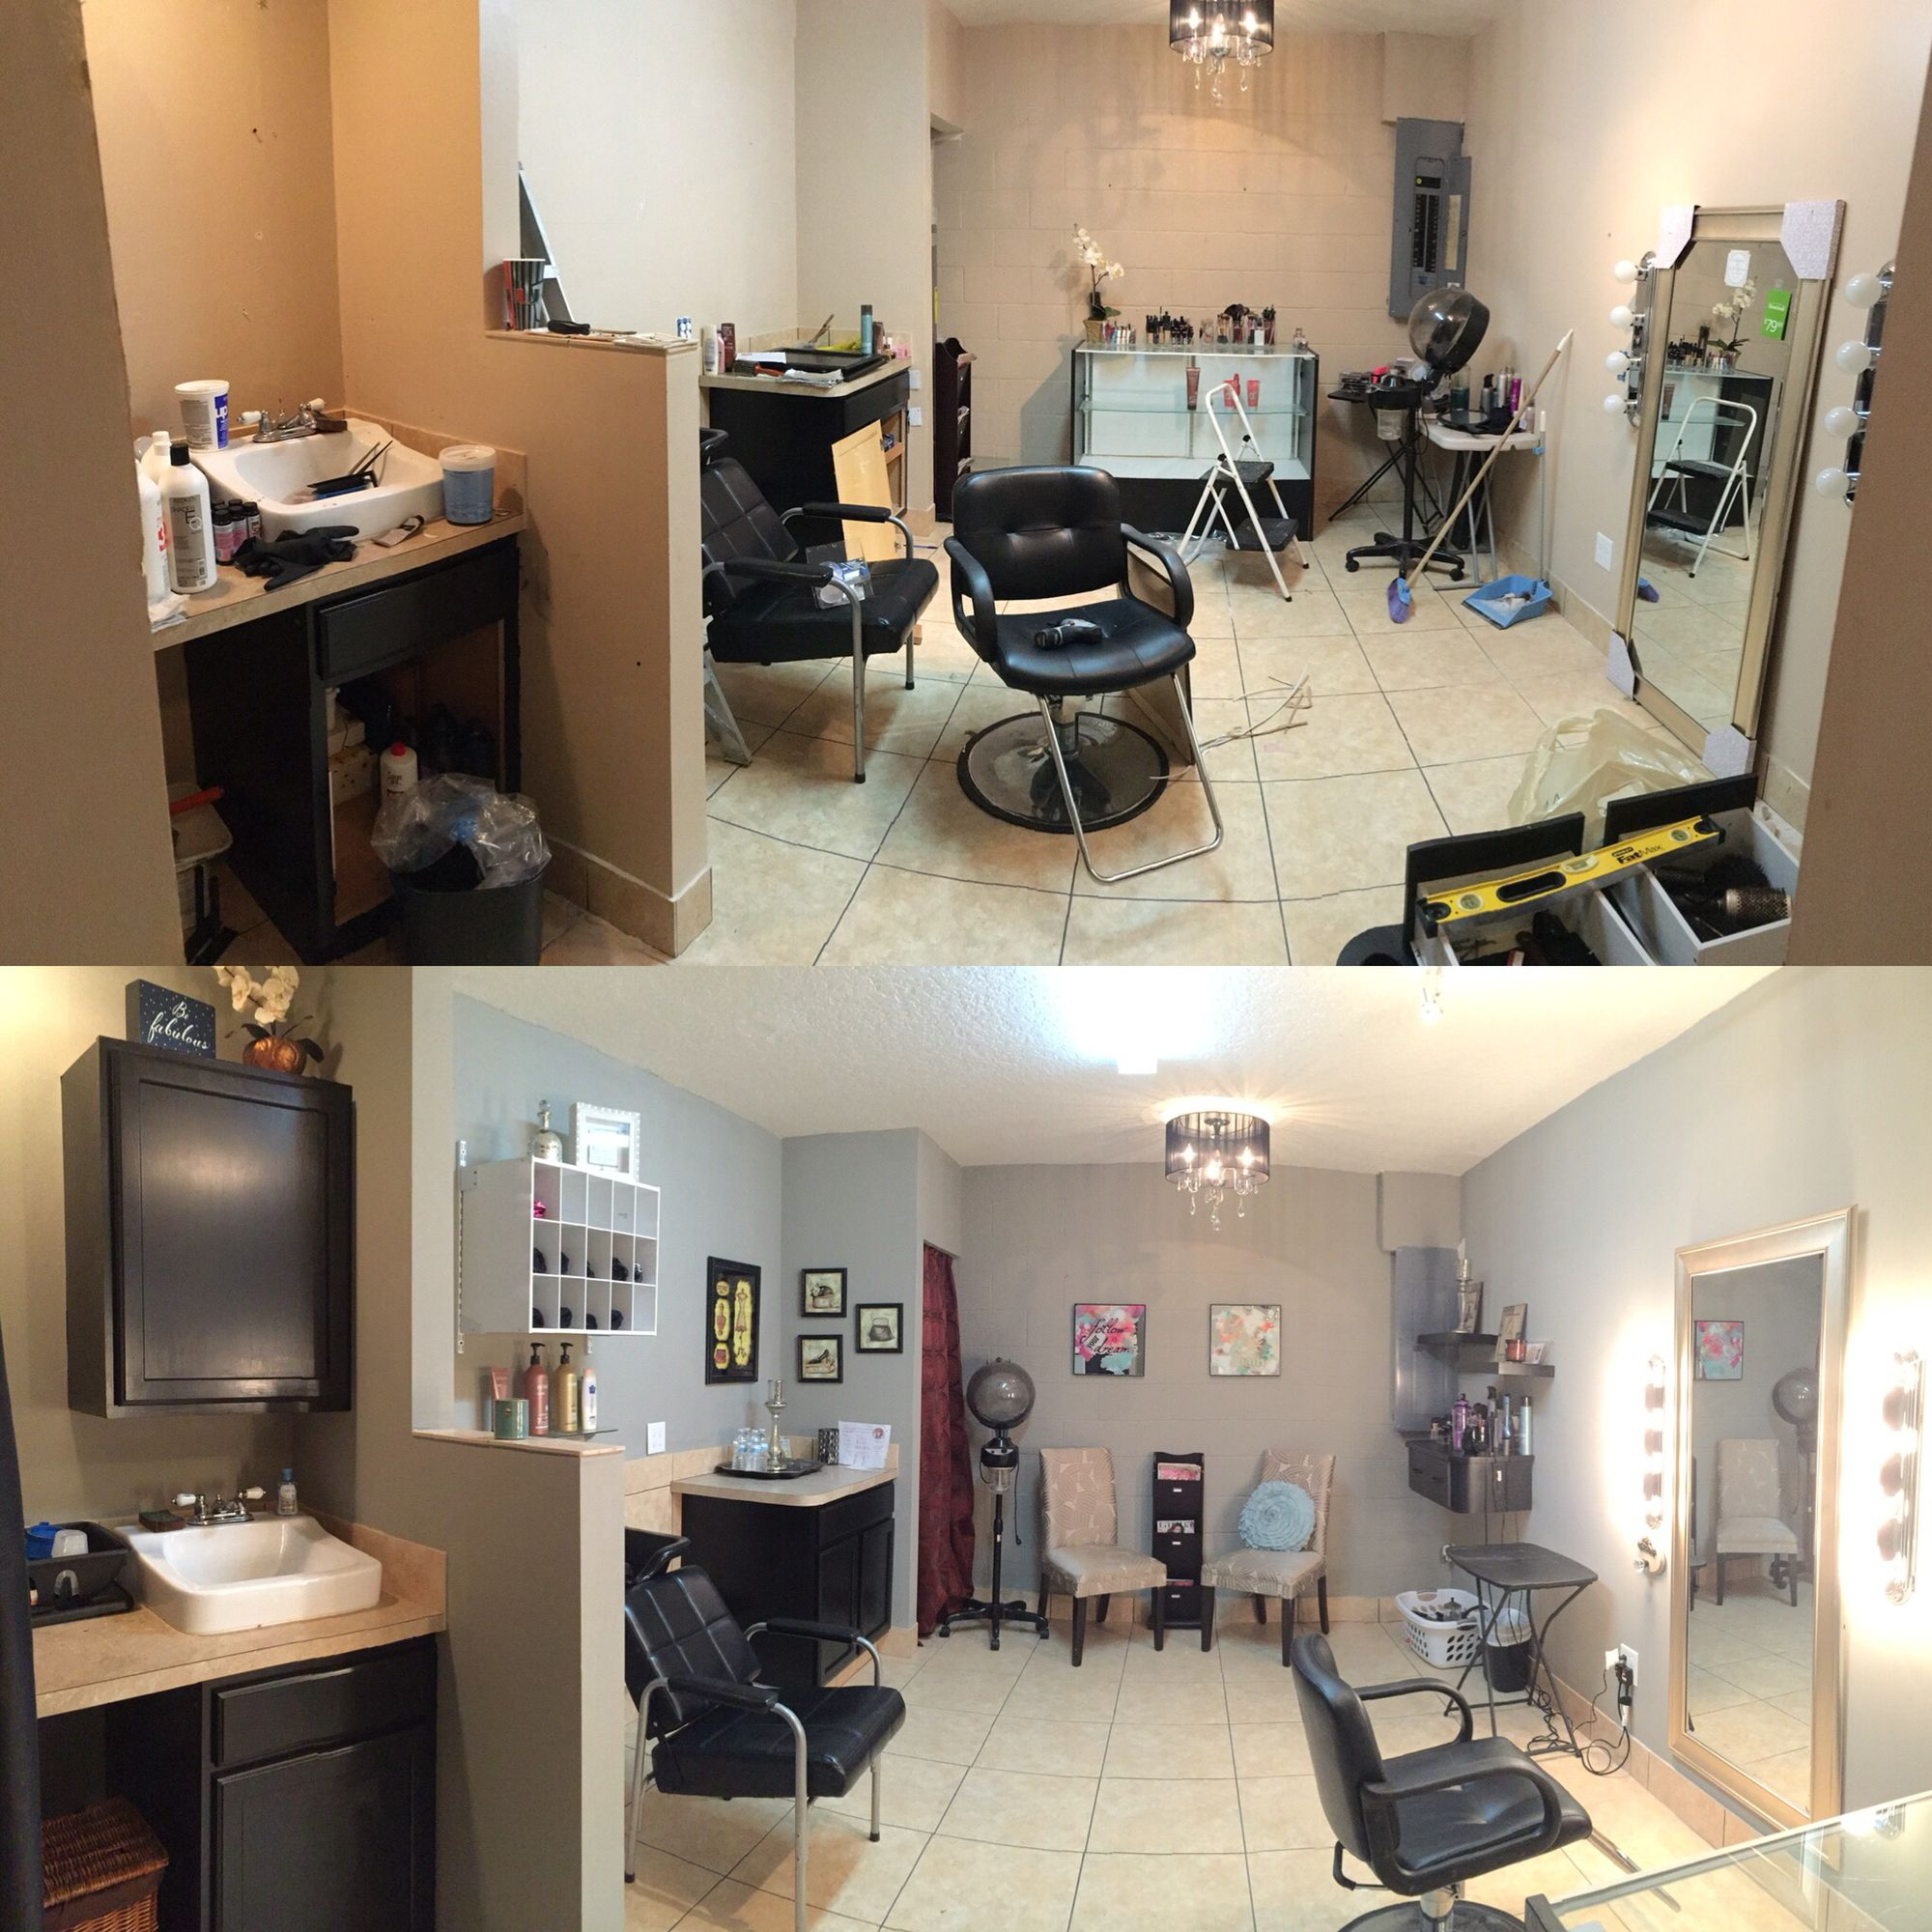 Hair salon  Home hair salons, Home salon, Beauty salon decor